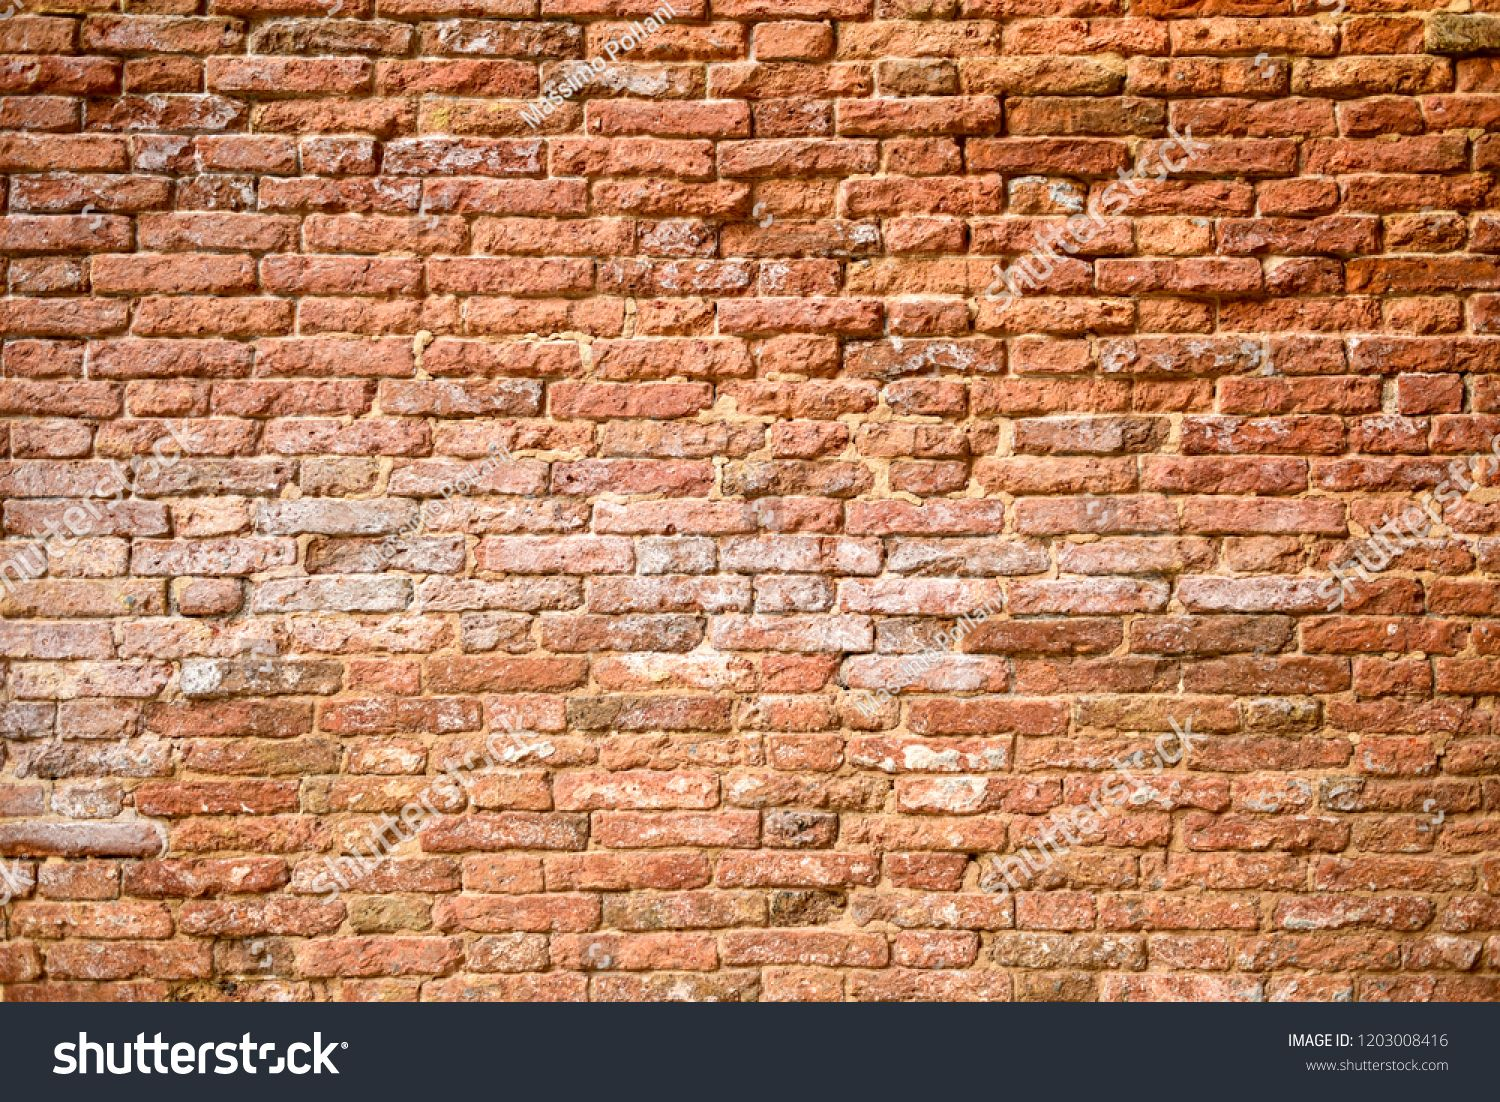 Front View Of A Red Old Fashioned Bricks Wall Old Brick Wall Brick Wallpaper Brick Wall